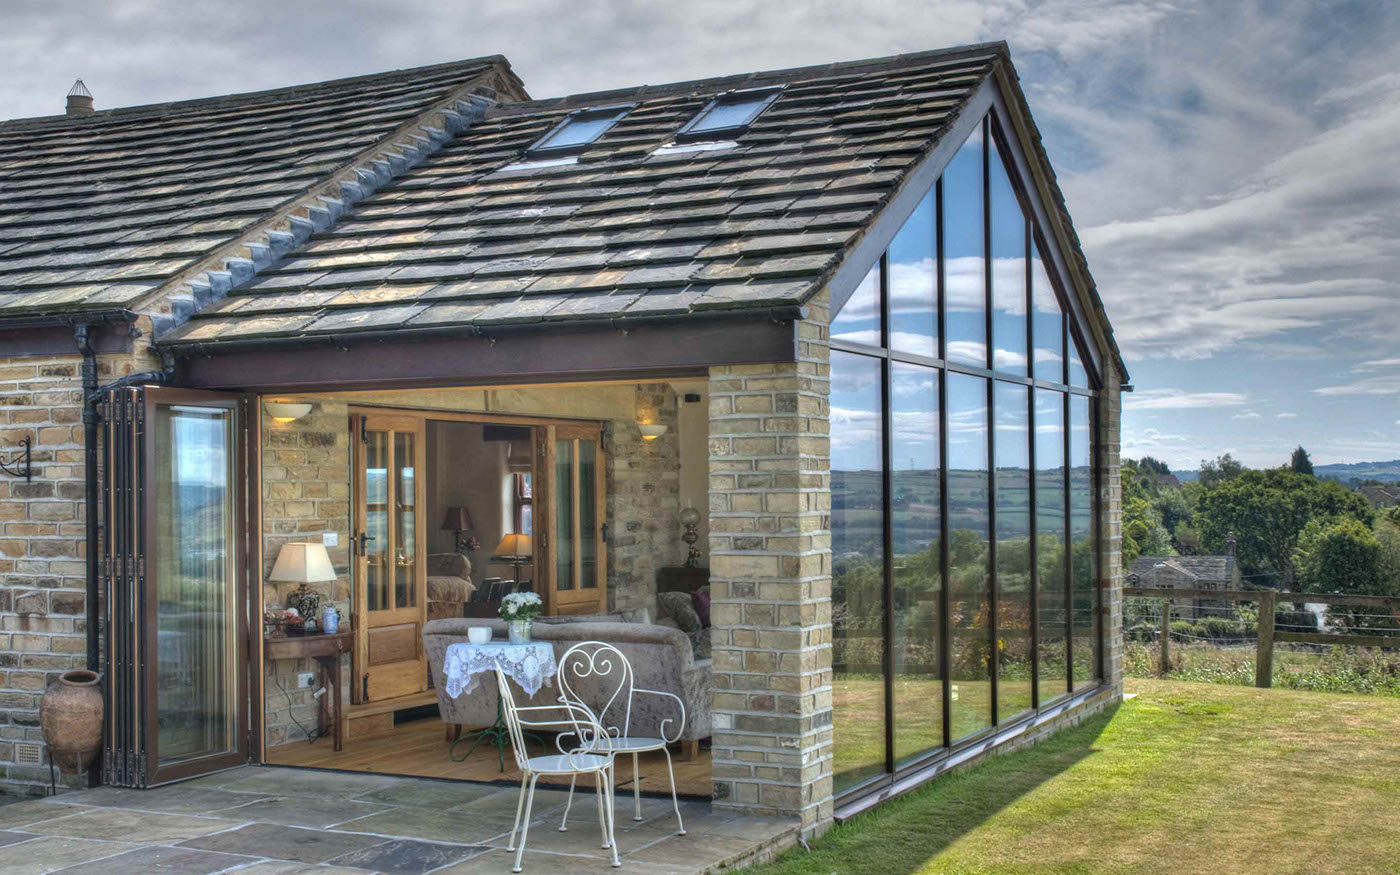 The Barn House Conversion On Behance